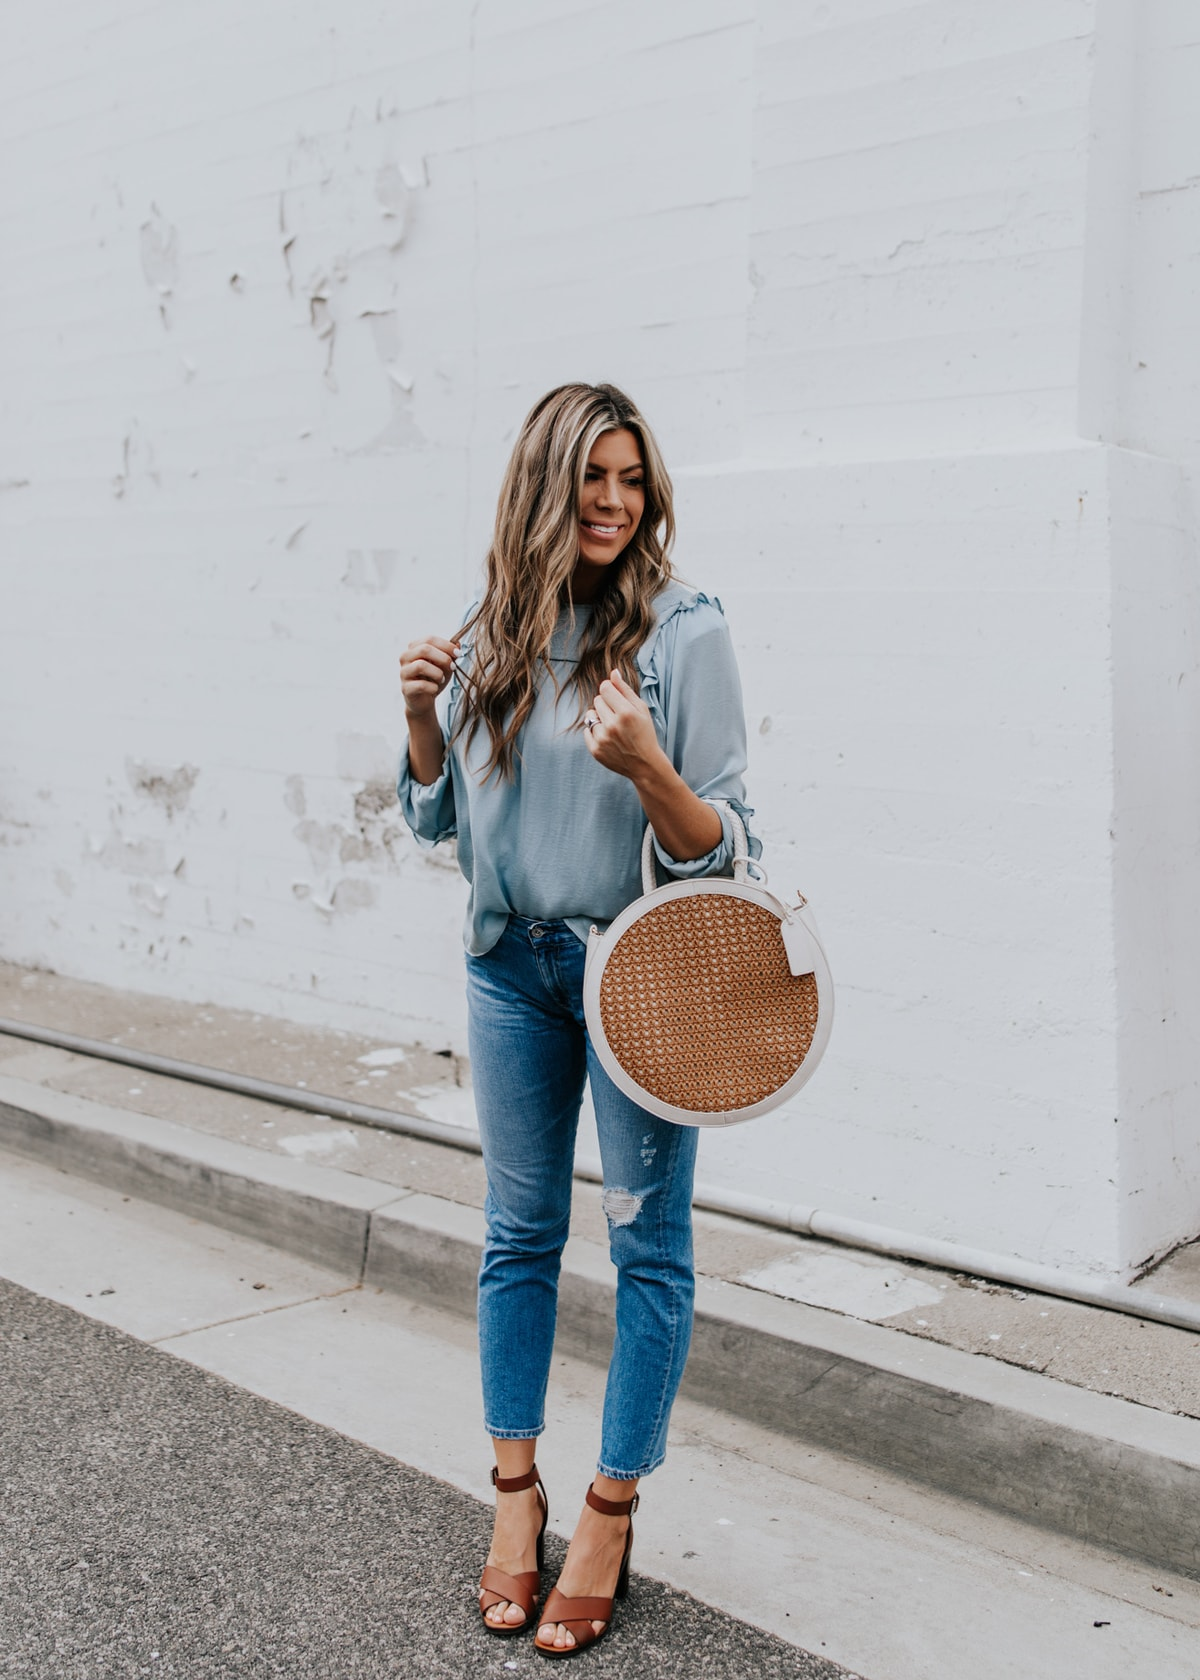 anthropologie promo code full outfit on sale!